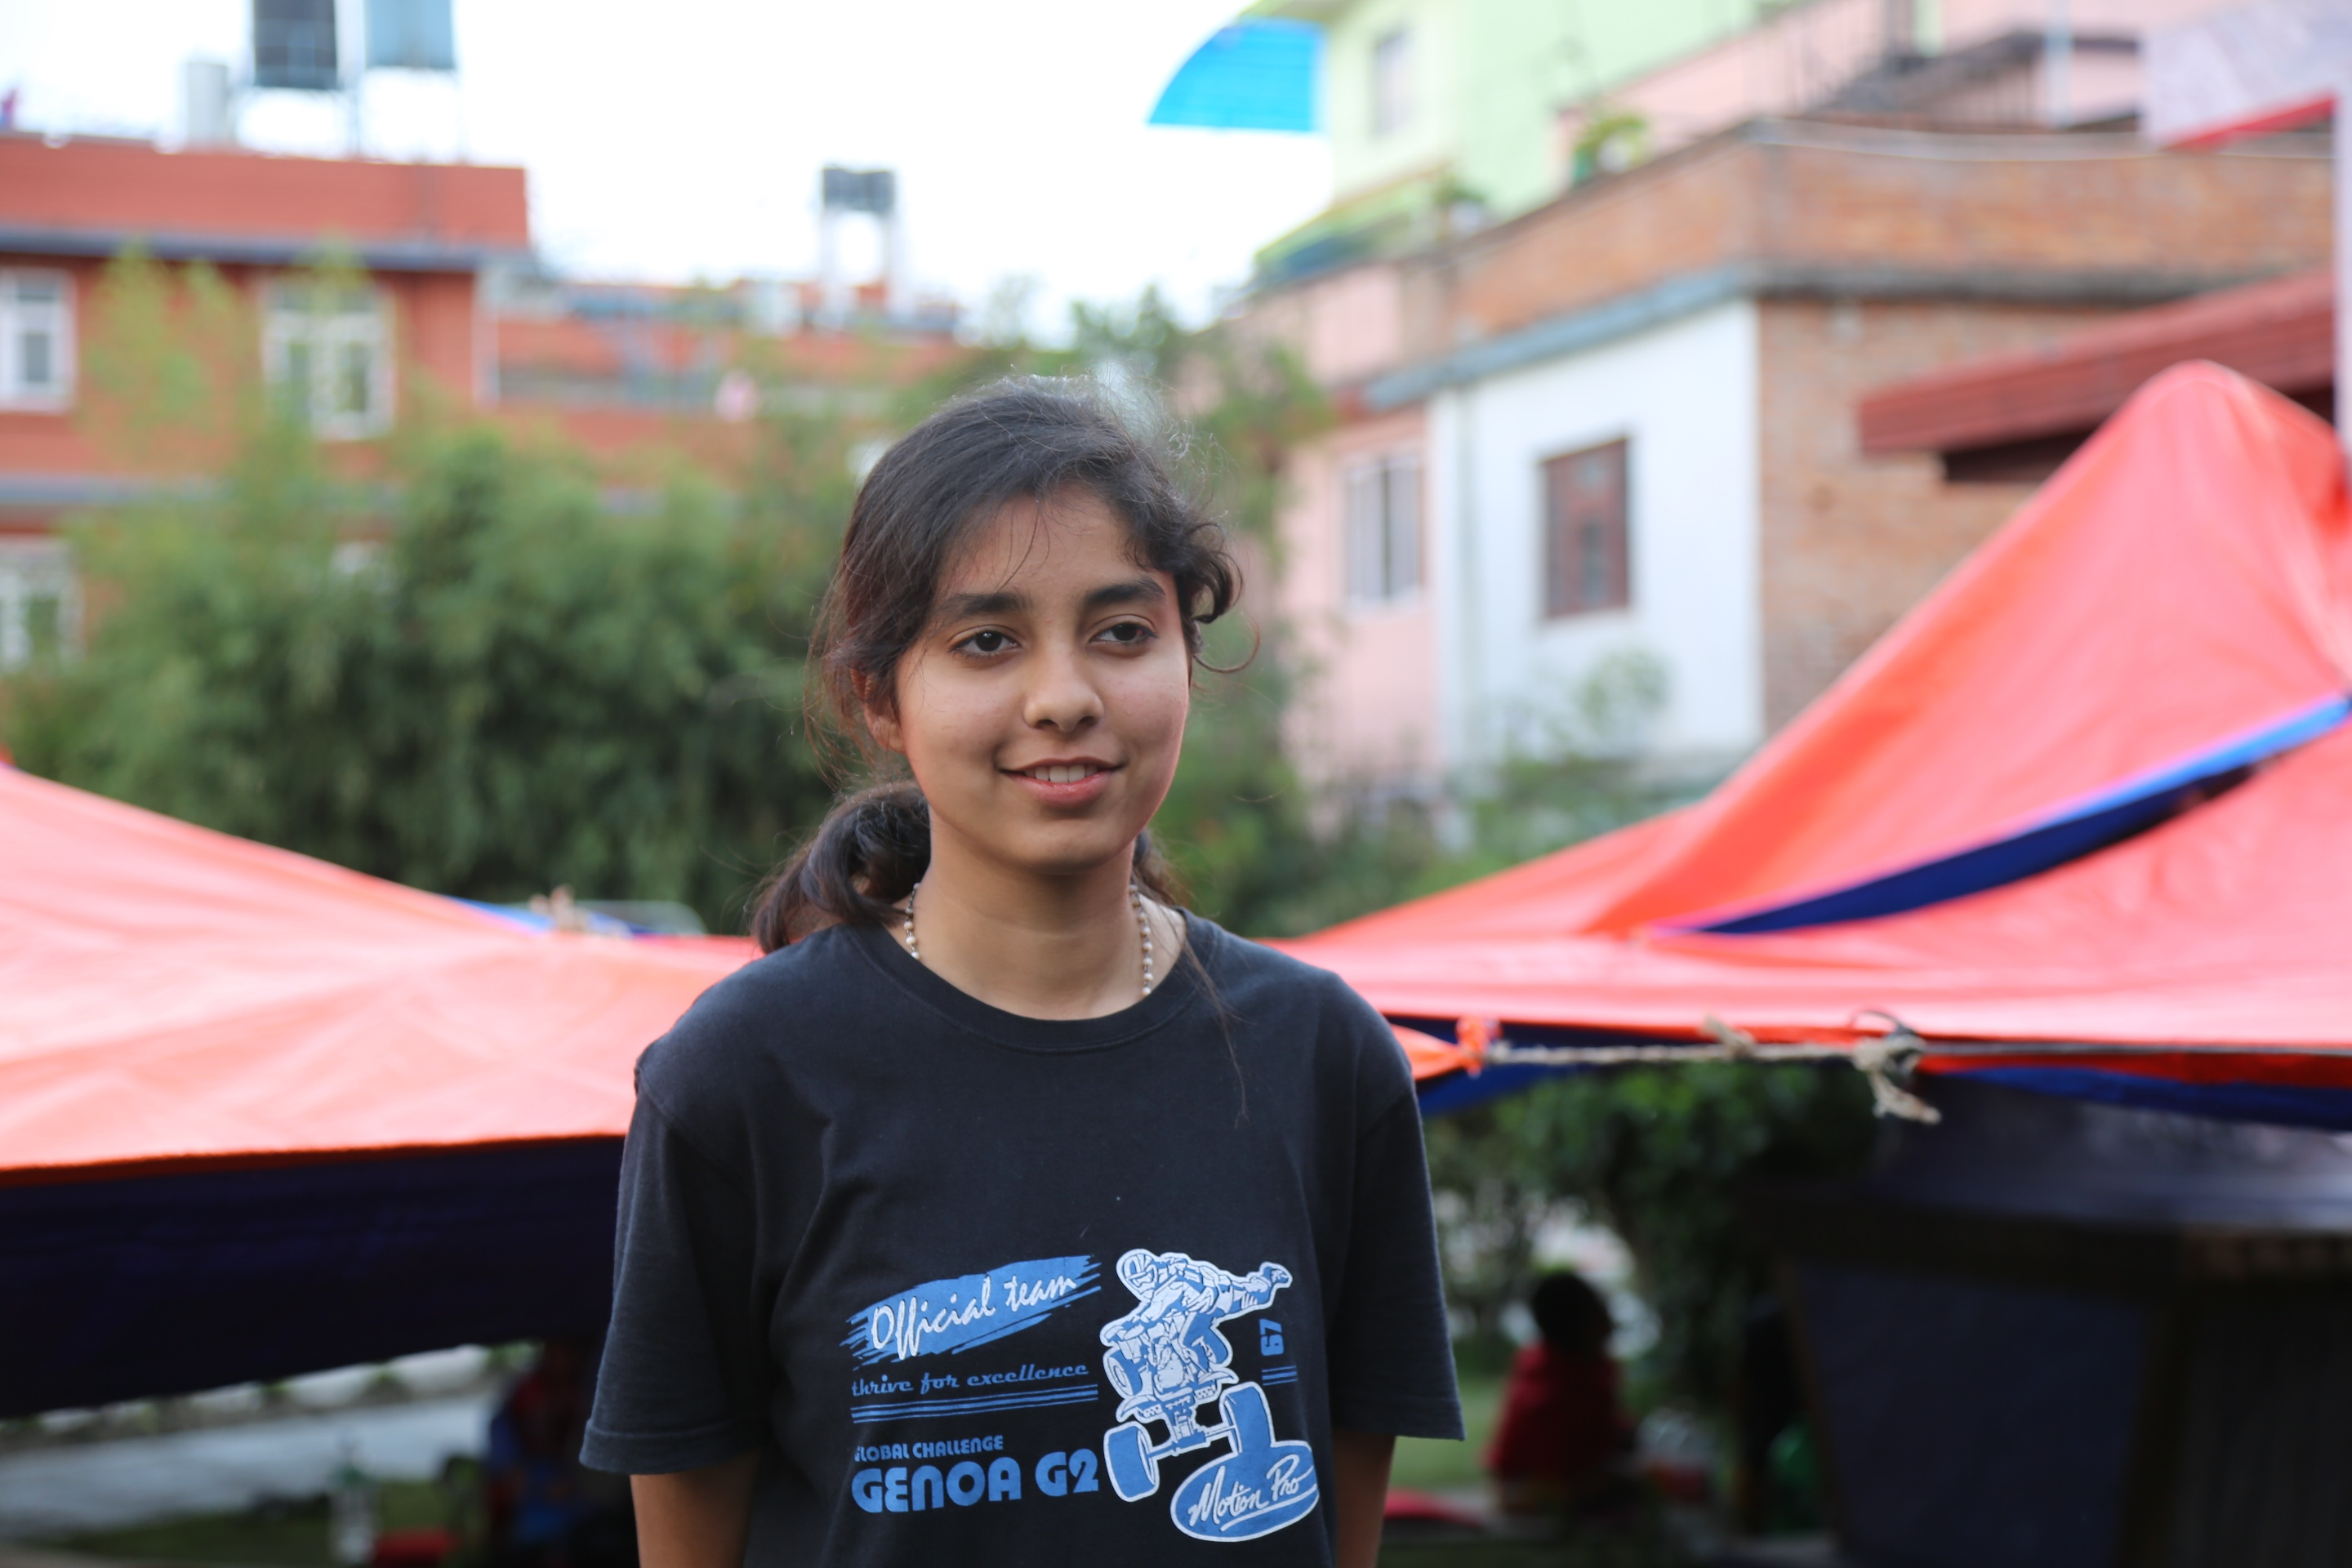 Qurnain, 15 years old - Nepal earthquake survivor